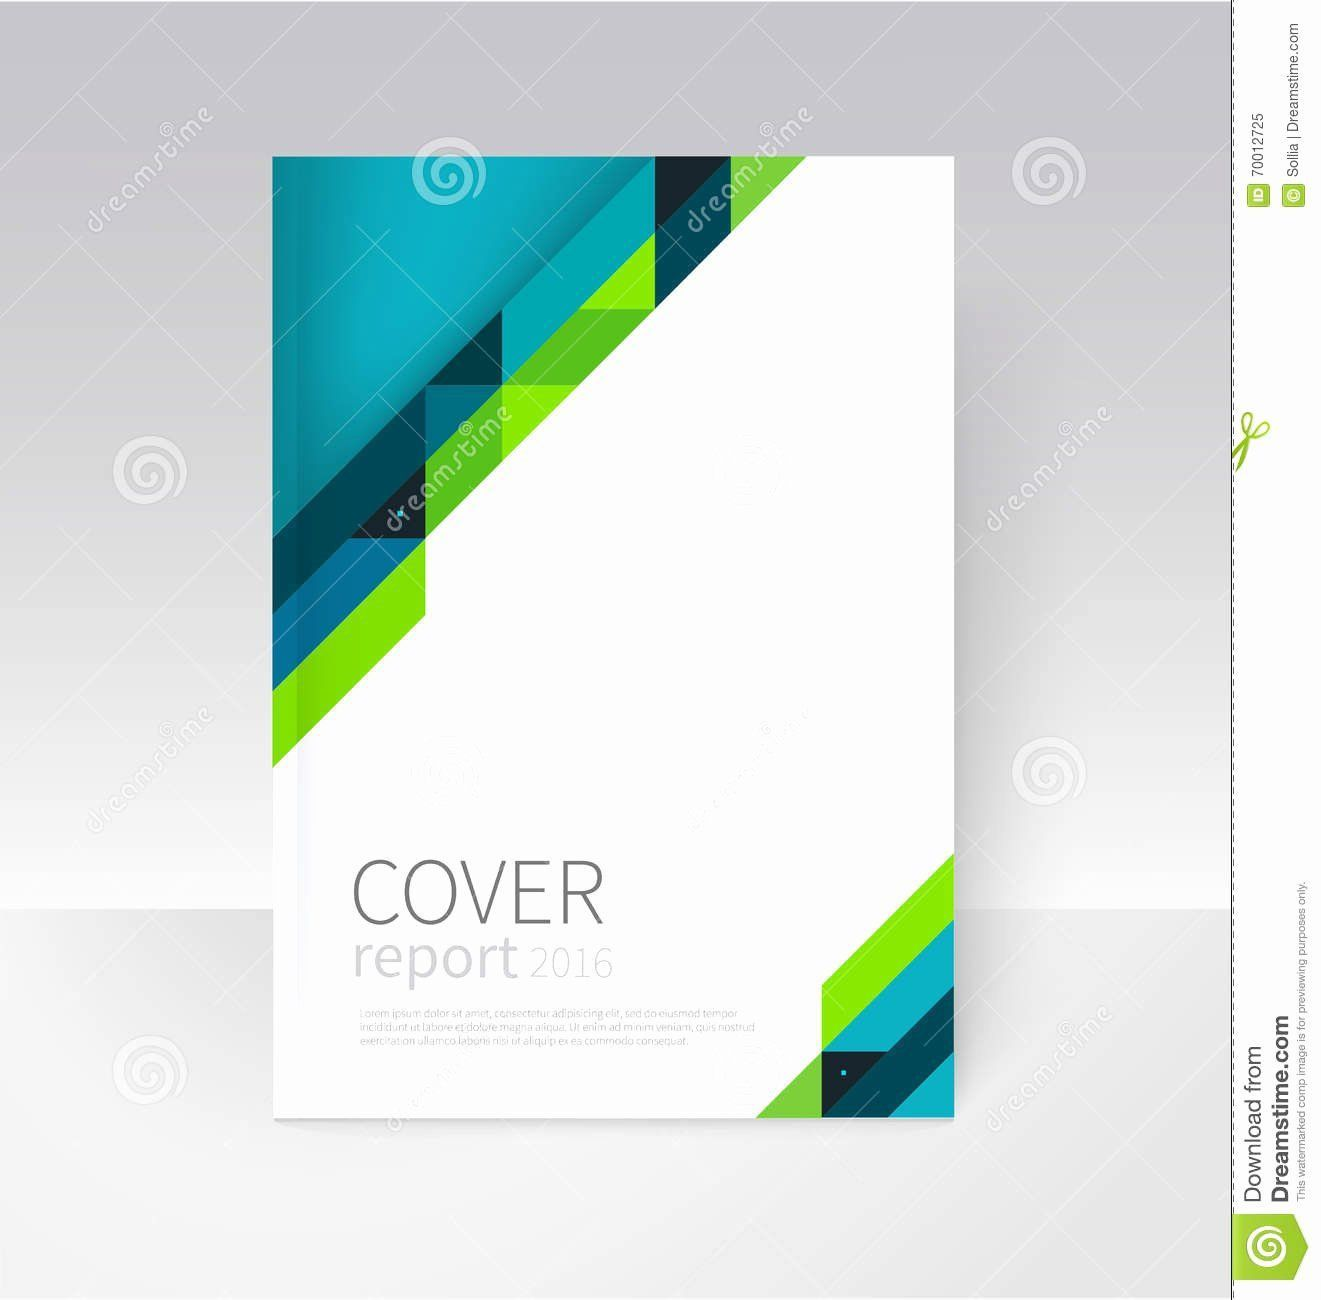 001 Formidable Book Front Page Design Template Free Download Inspiration  Cover PsdFull